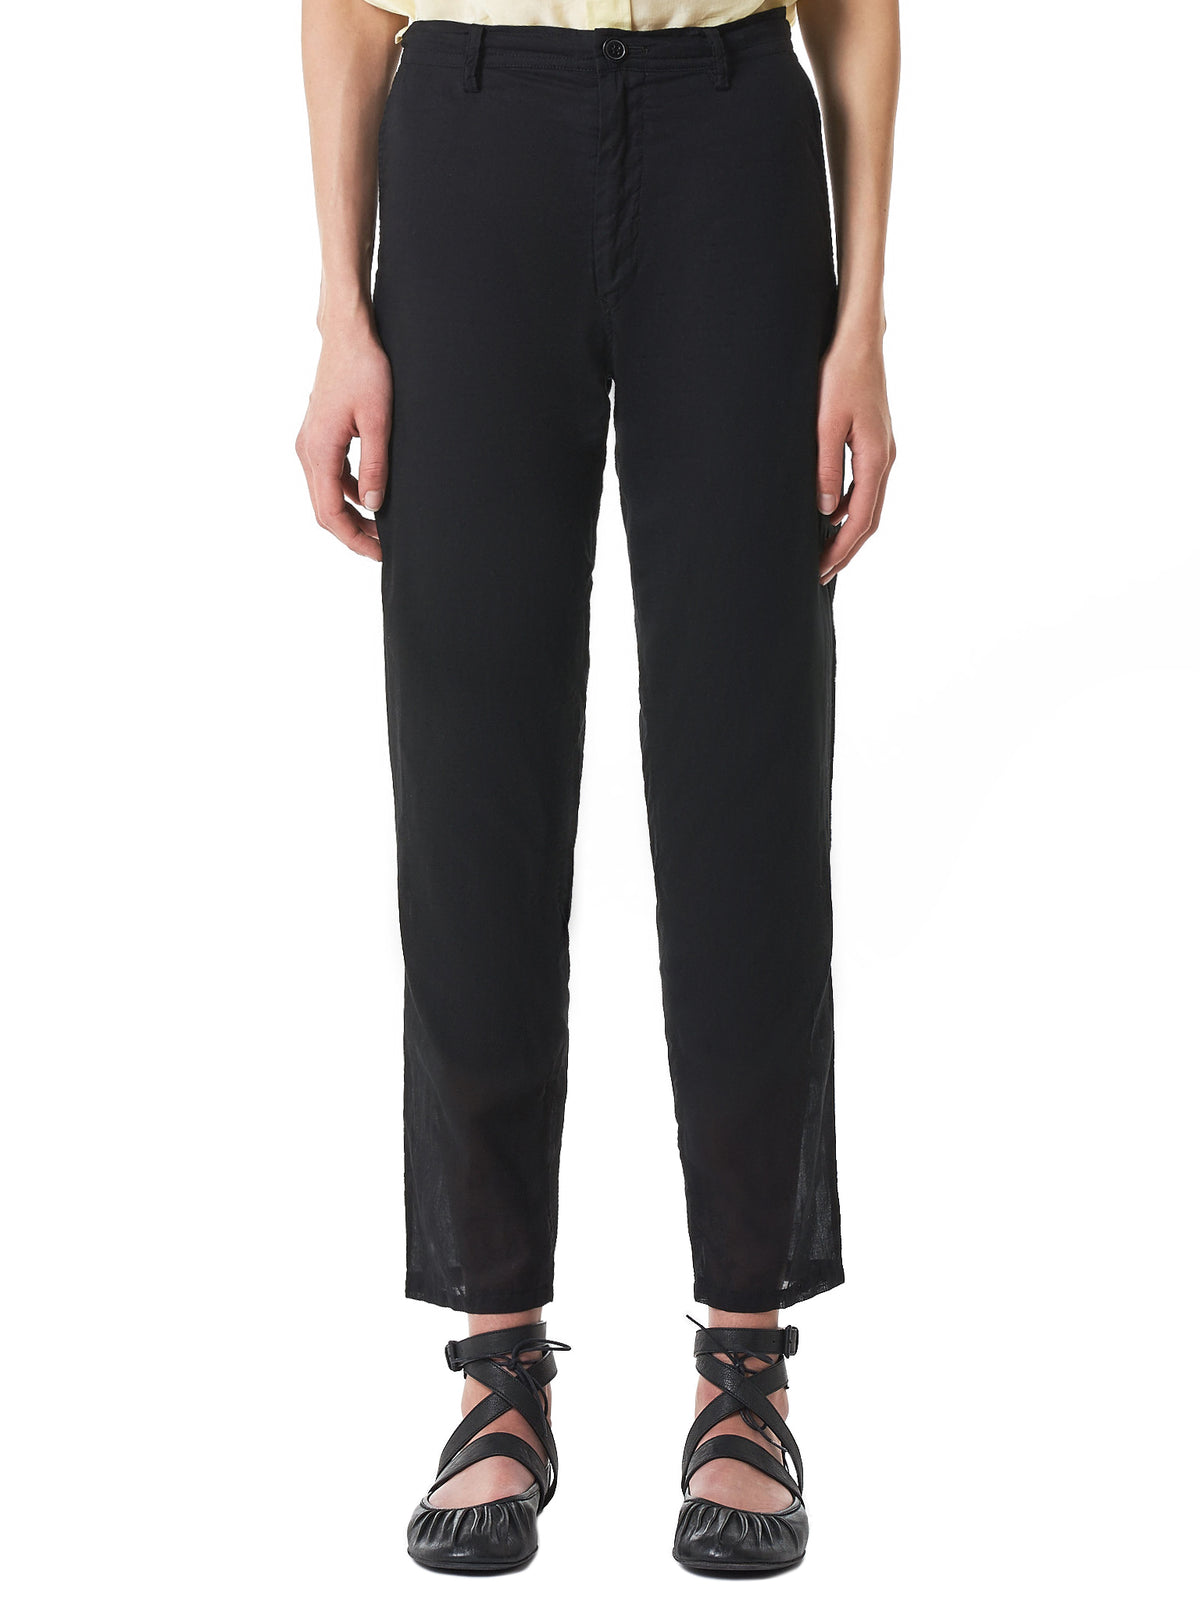 Lined Light Trousers (YZ-P08-028-BLACK)